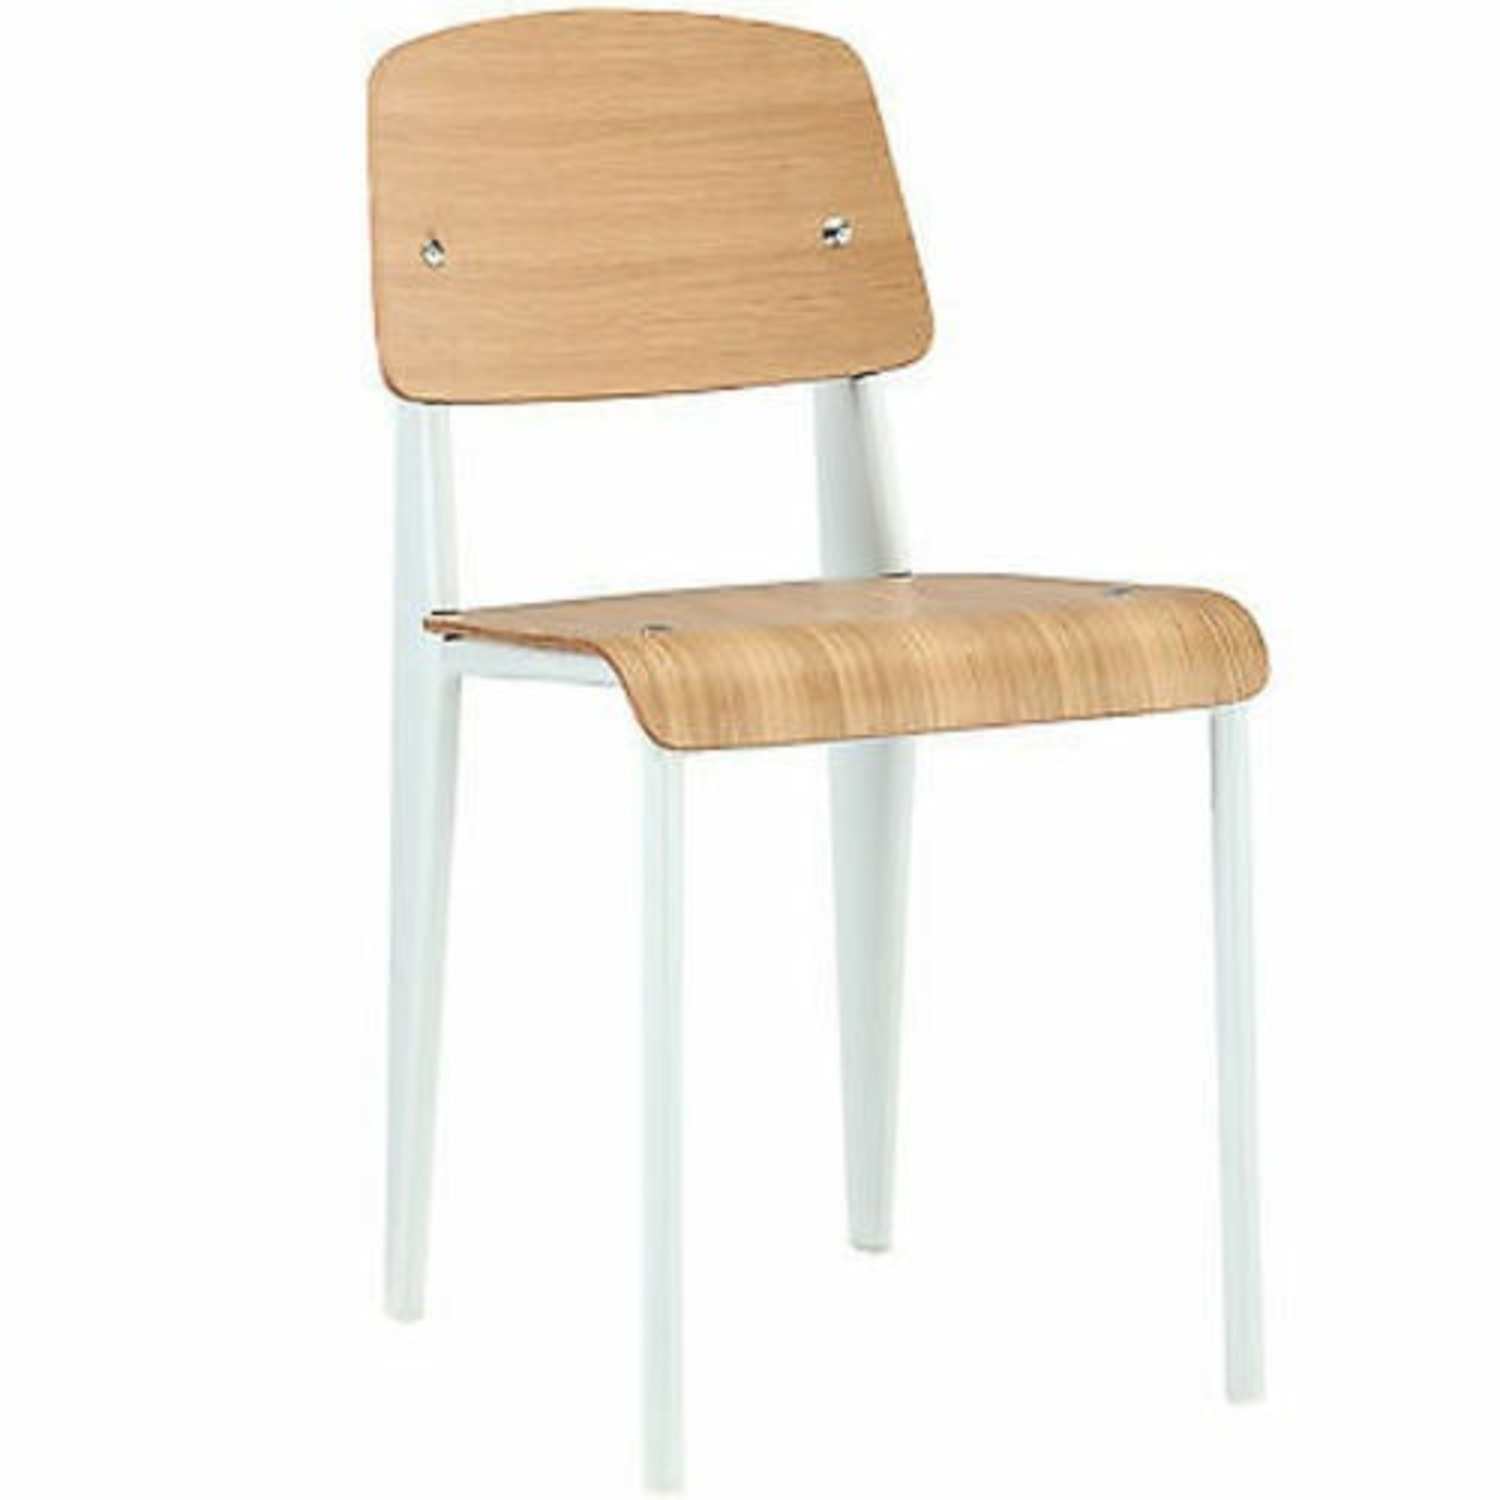 Jean Prouve Style Chair in Natural White - image-1